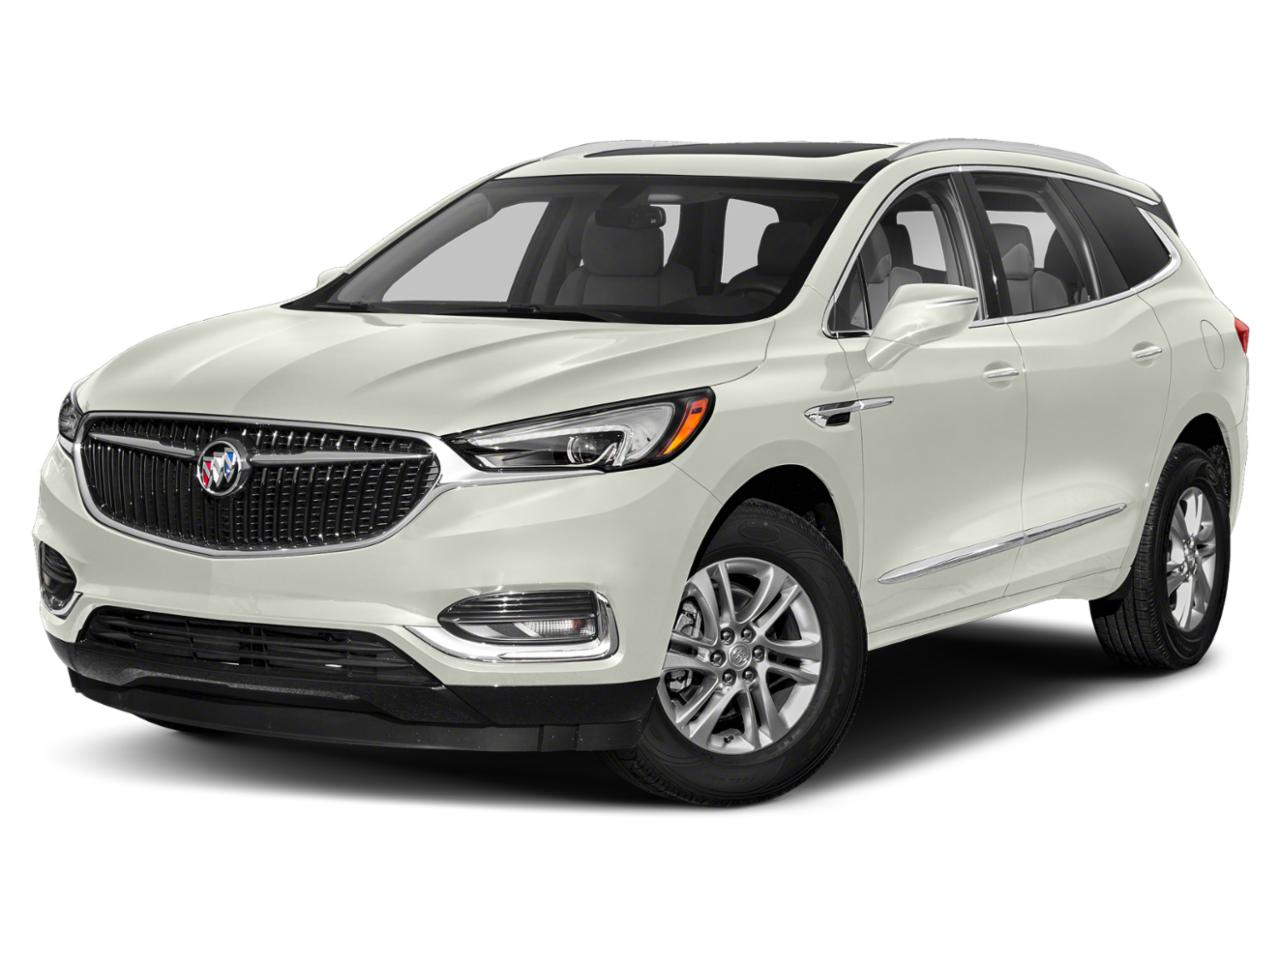 2020 Buick Enclave For Sale At Georgian Chevrolet Buick Gmc In Barrie On New 2021 Buick Enclave Interior Colors, Heads Up Display, Incentives